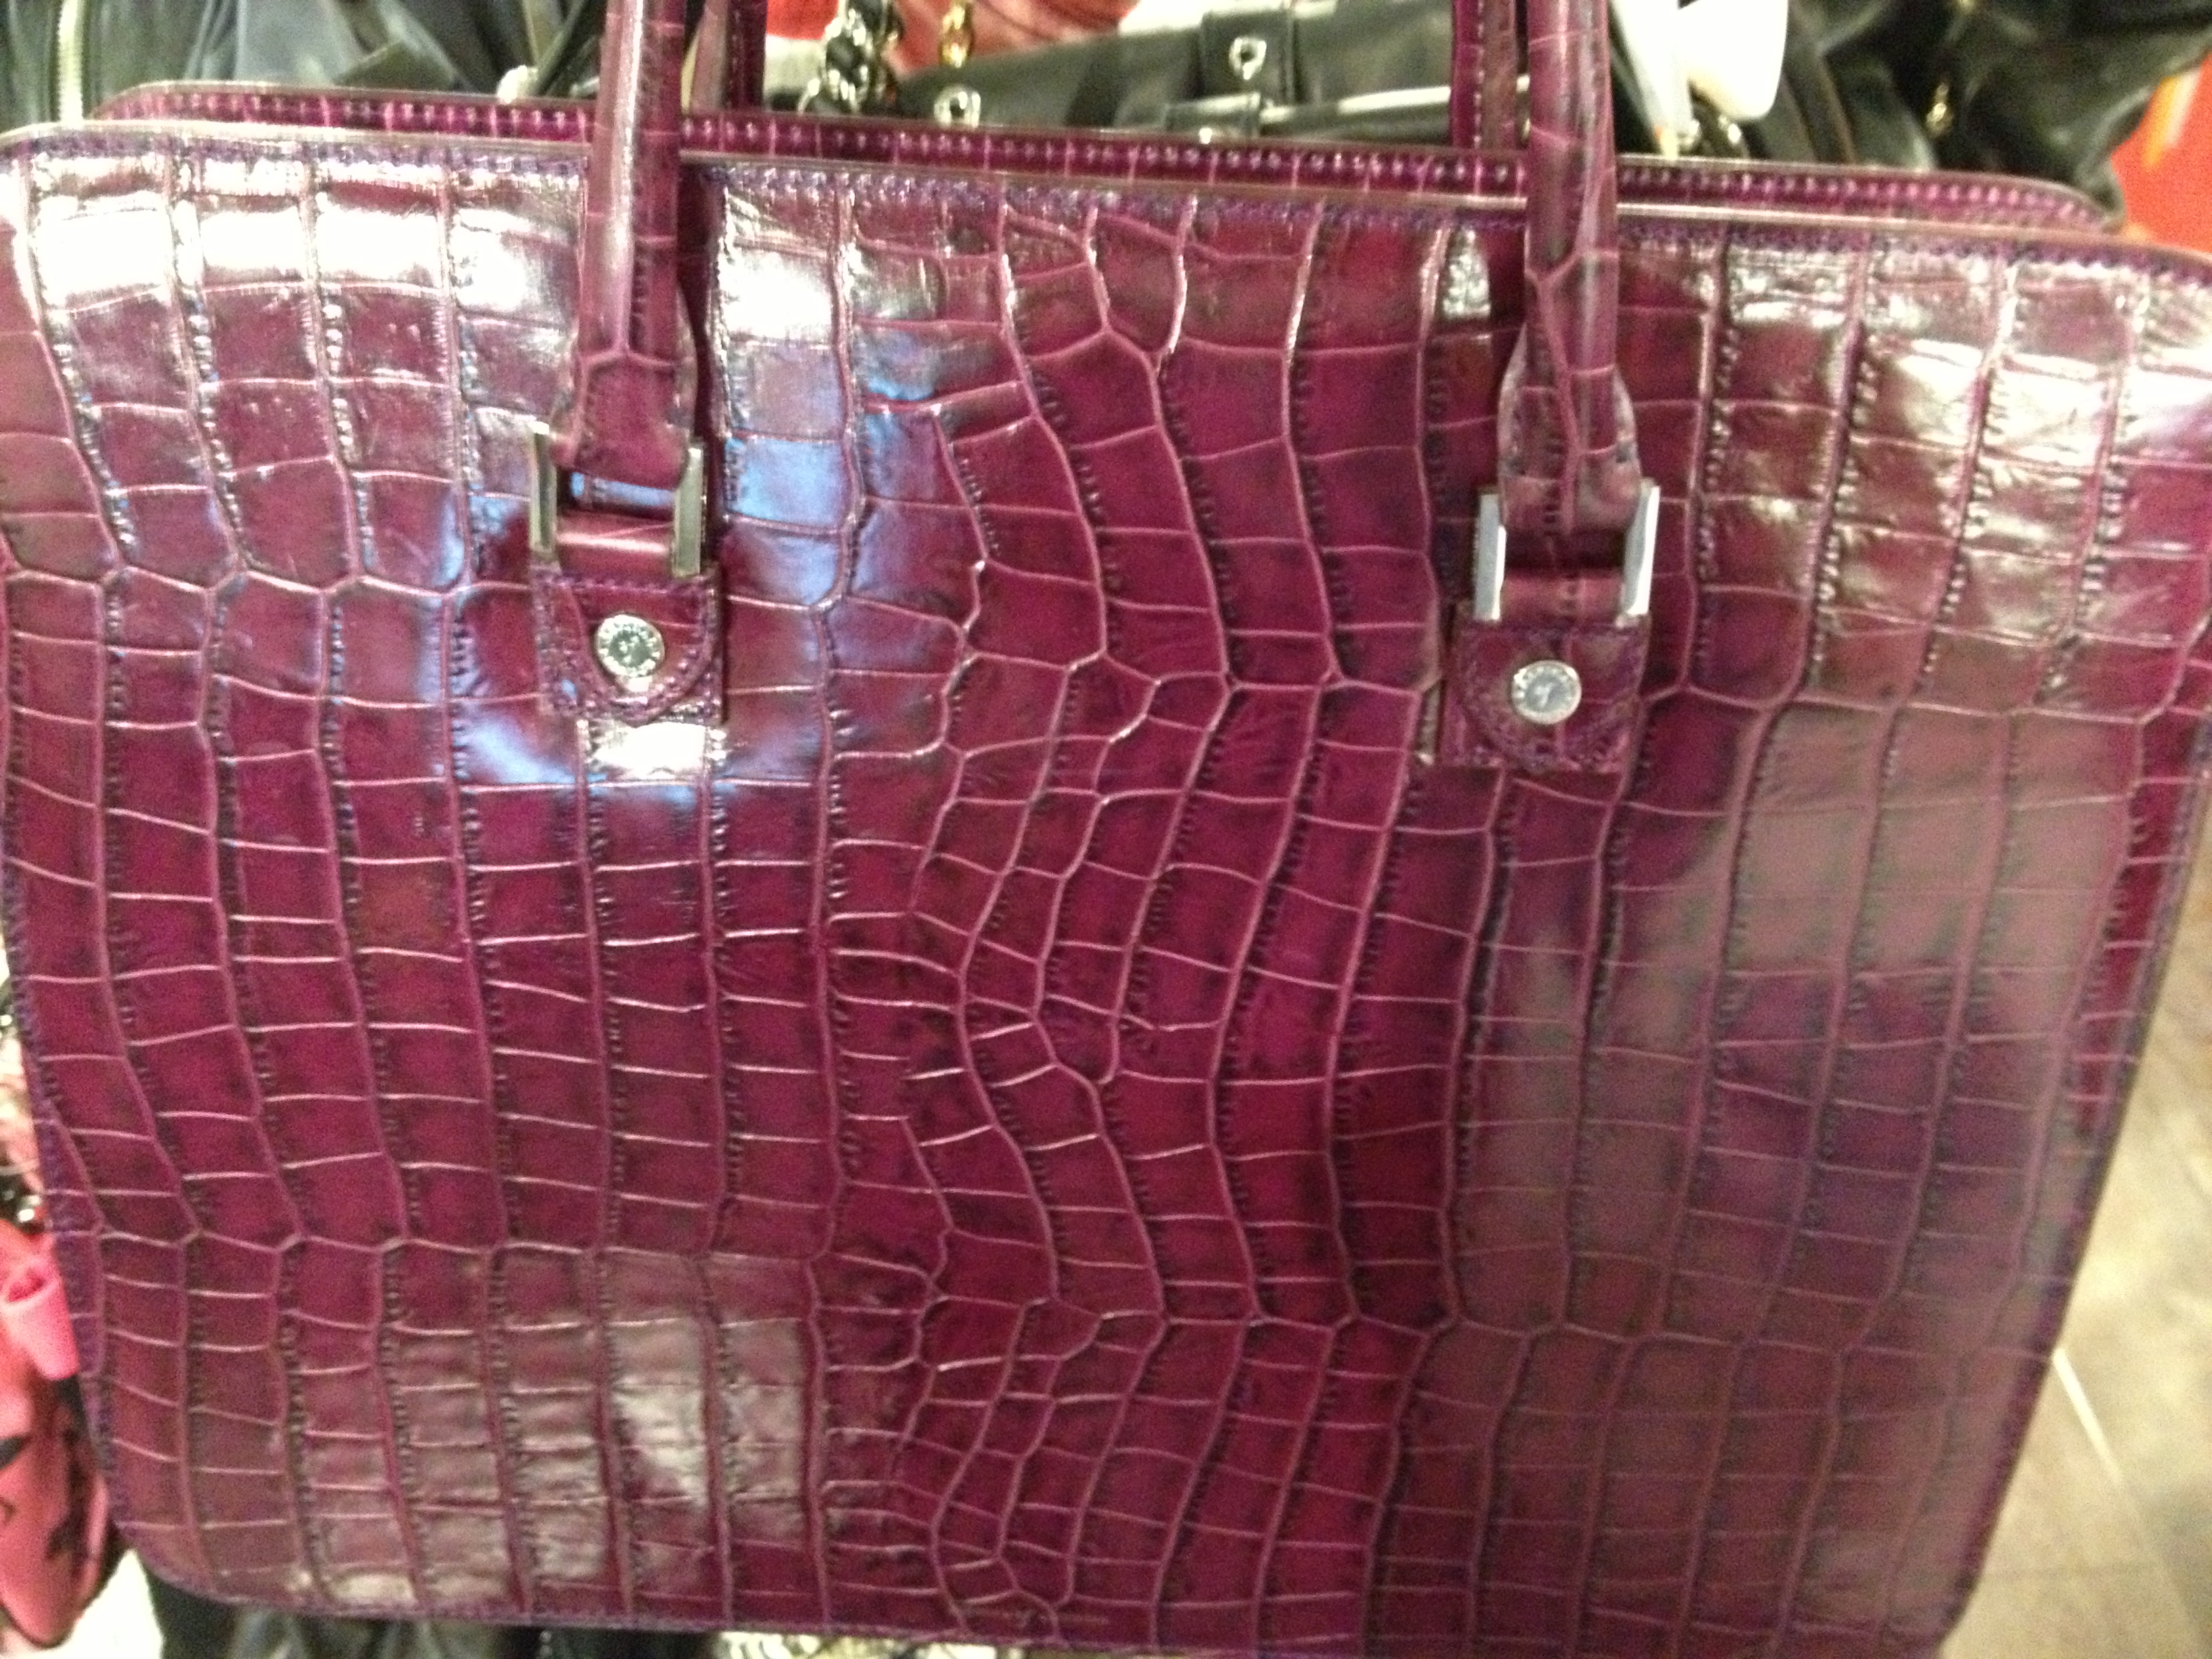 be56ed99e04e Aspinal Purple Croc bag. RRP was £600 and this was selling for £160